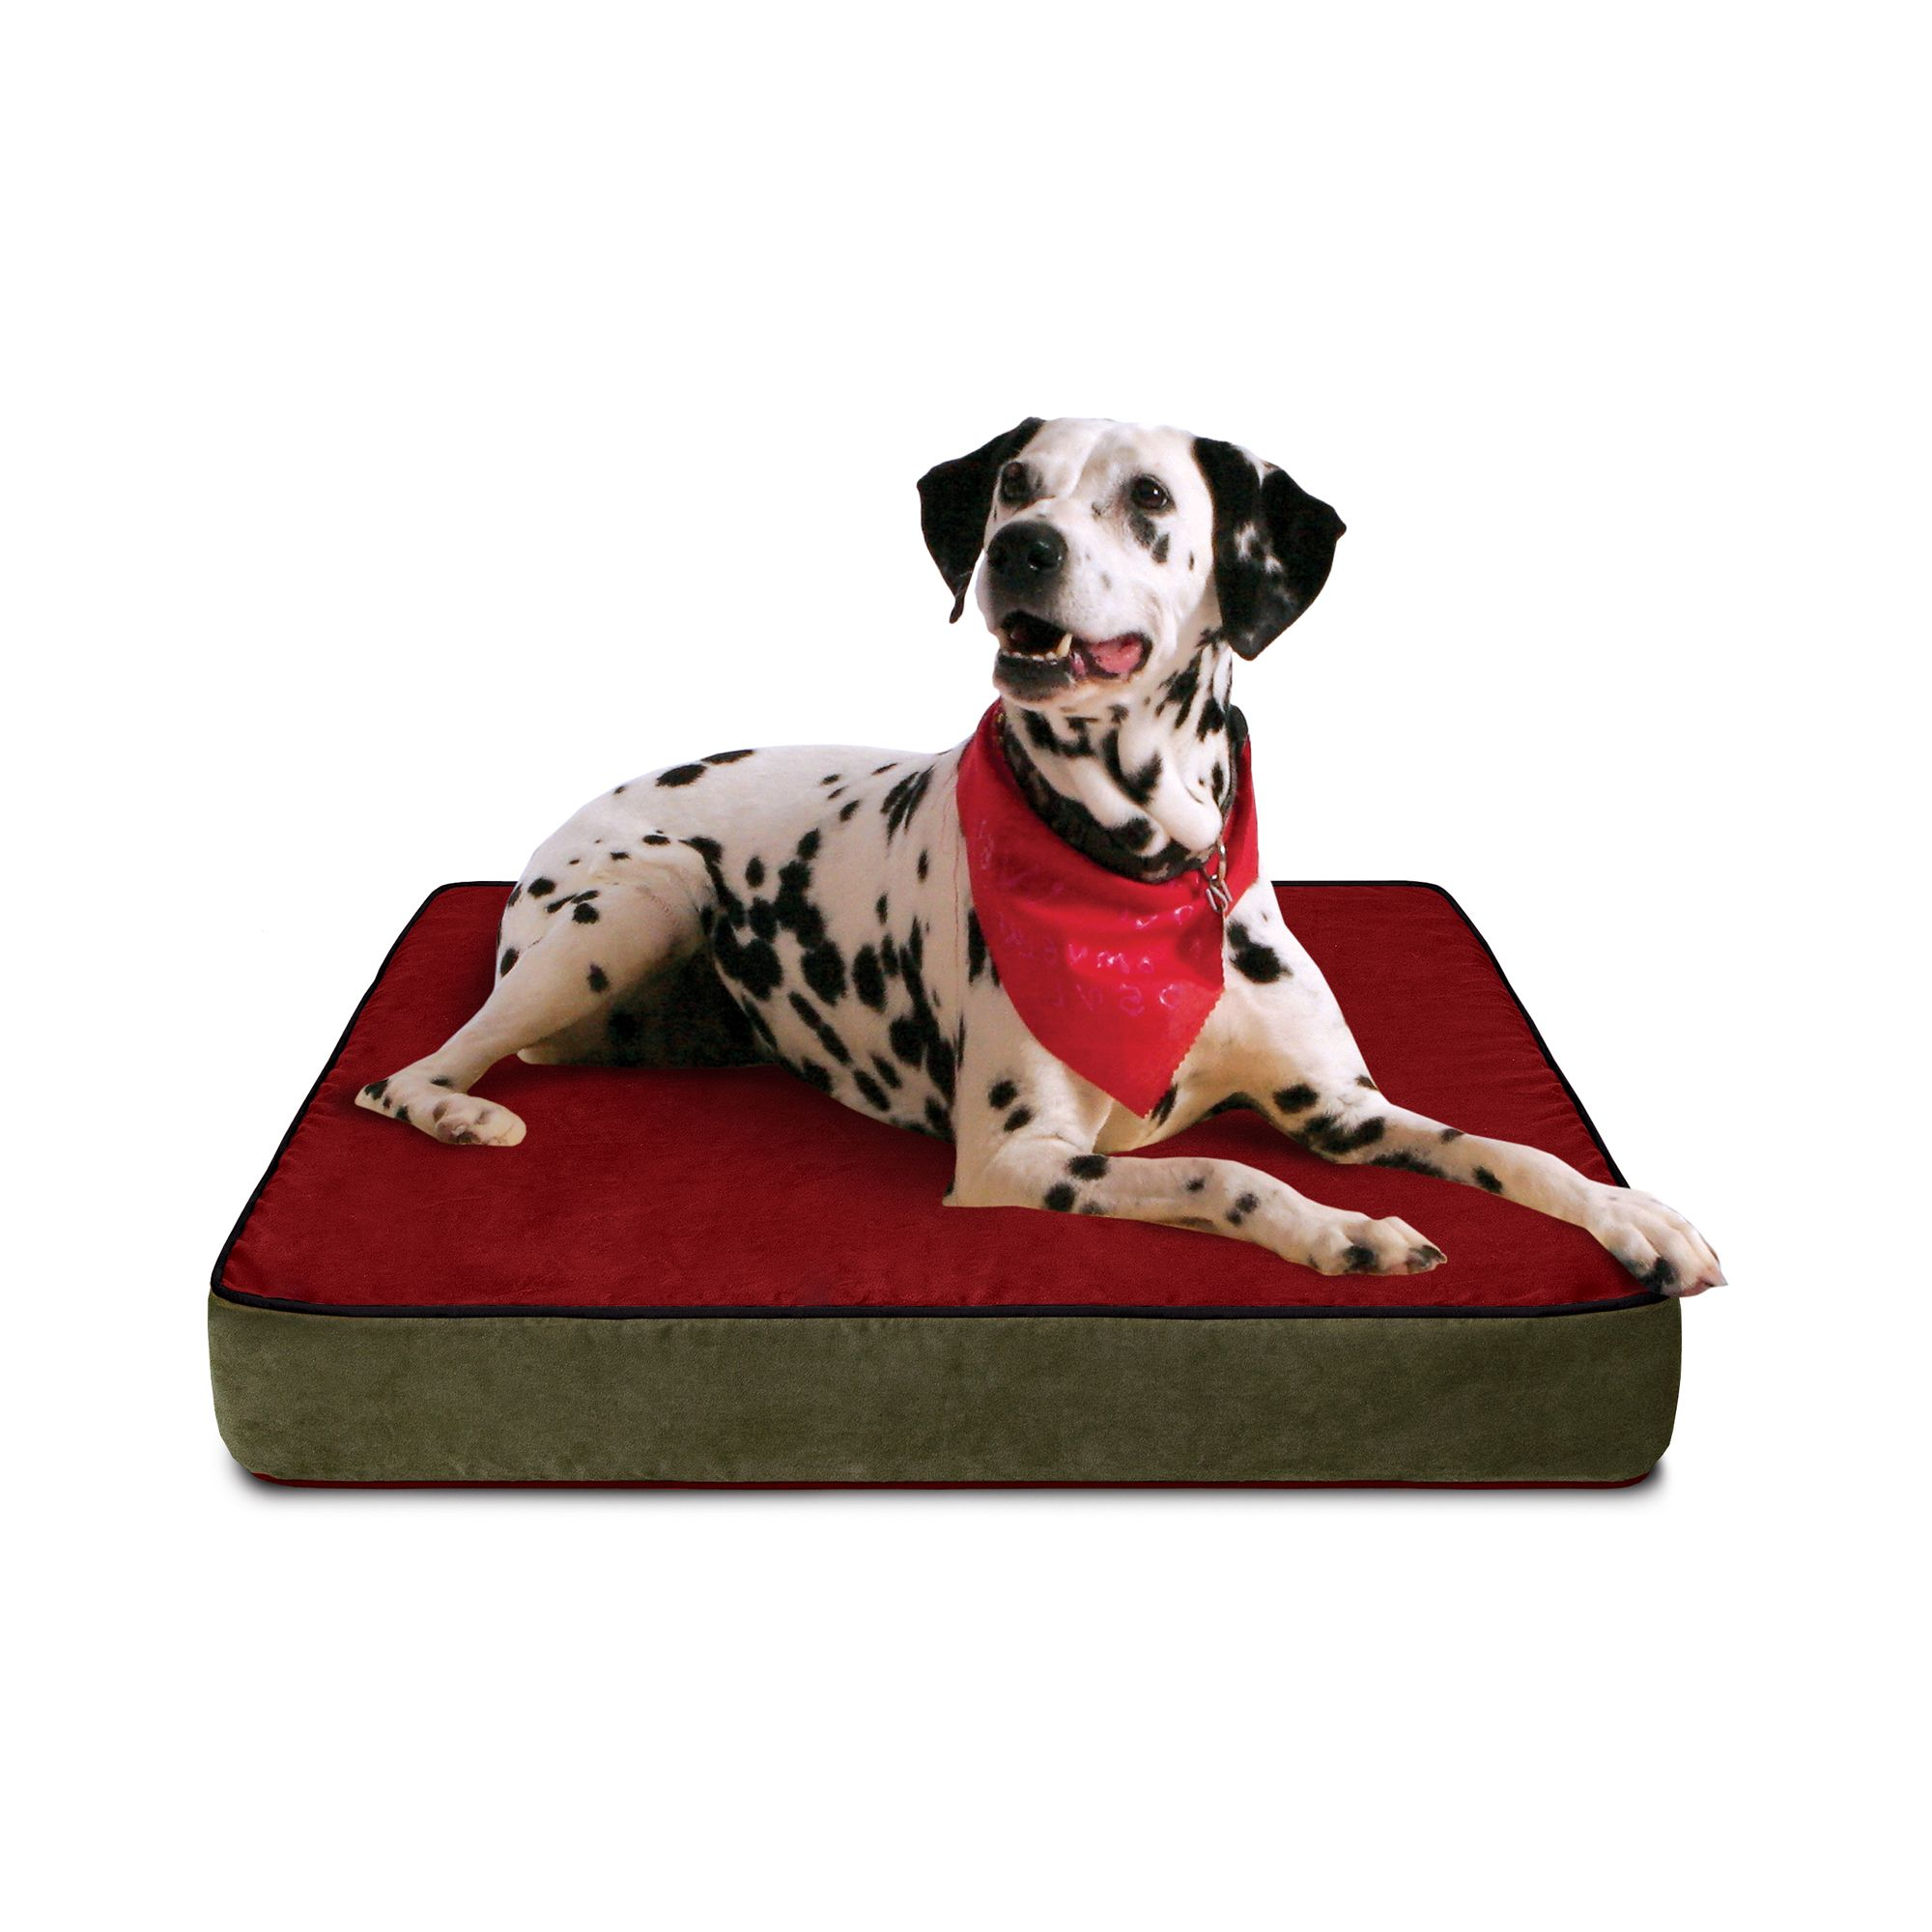 Buddy Beds Luxury Memory Foam Dog Bed with Colorado